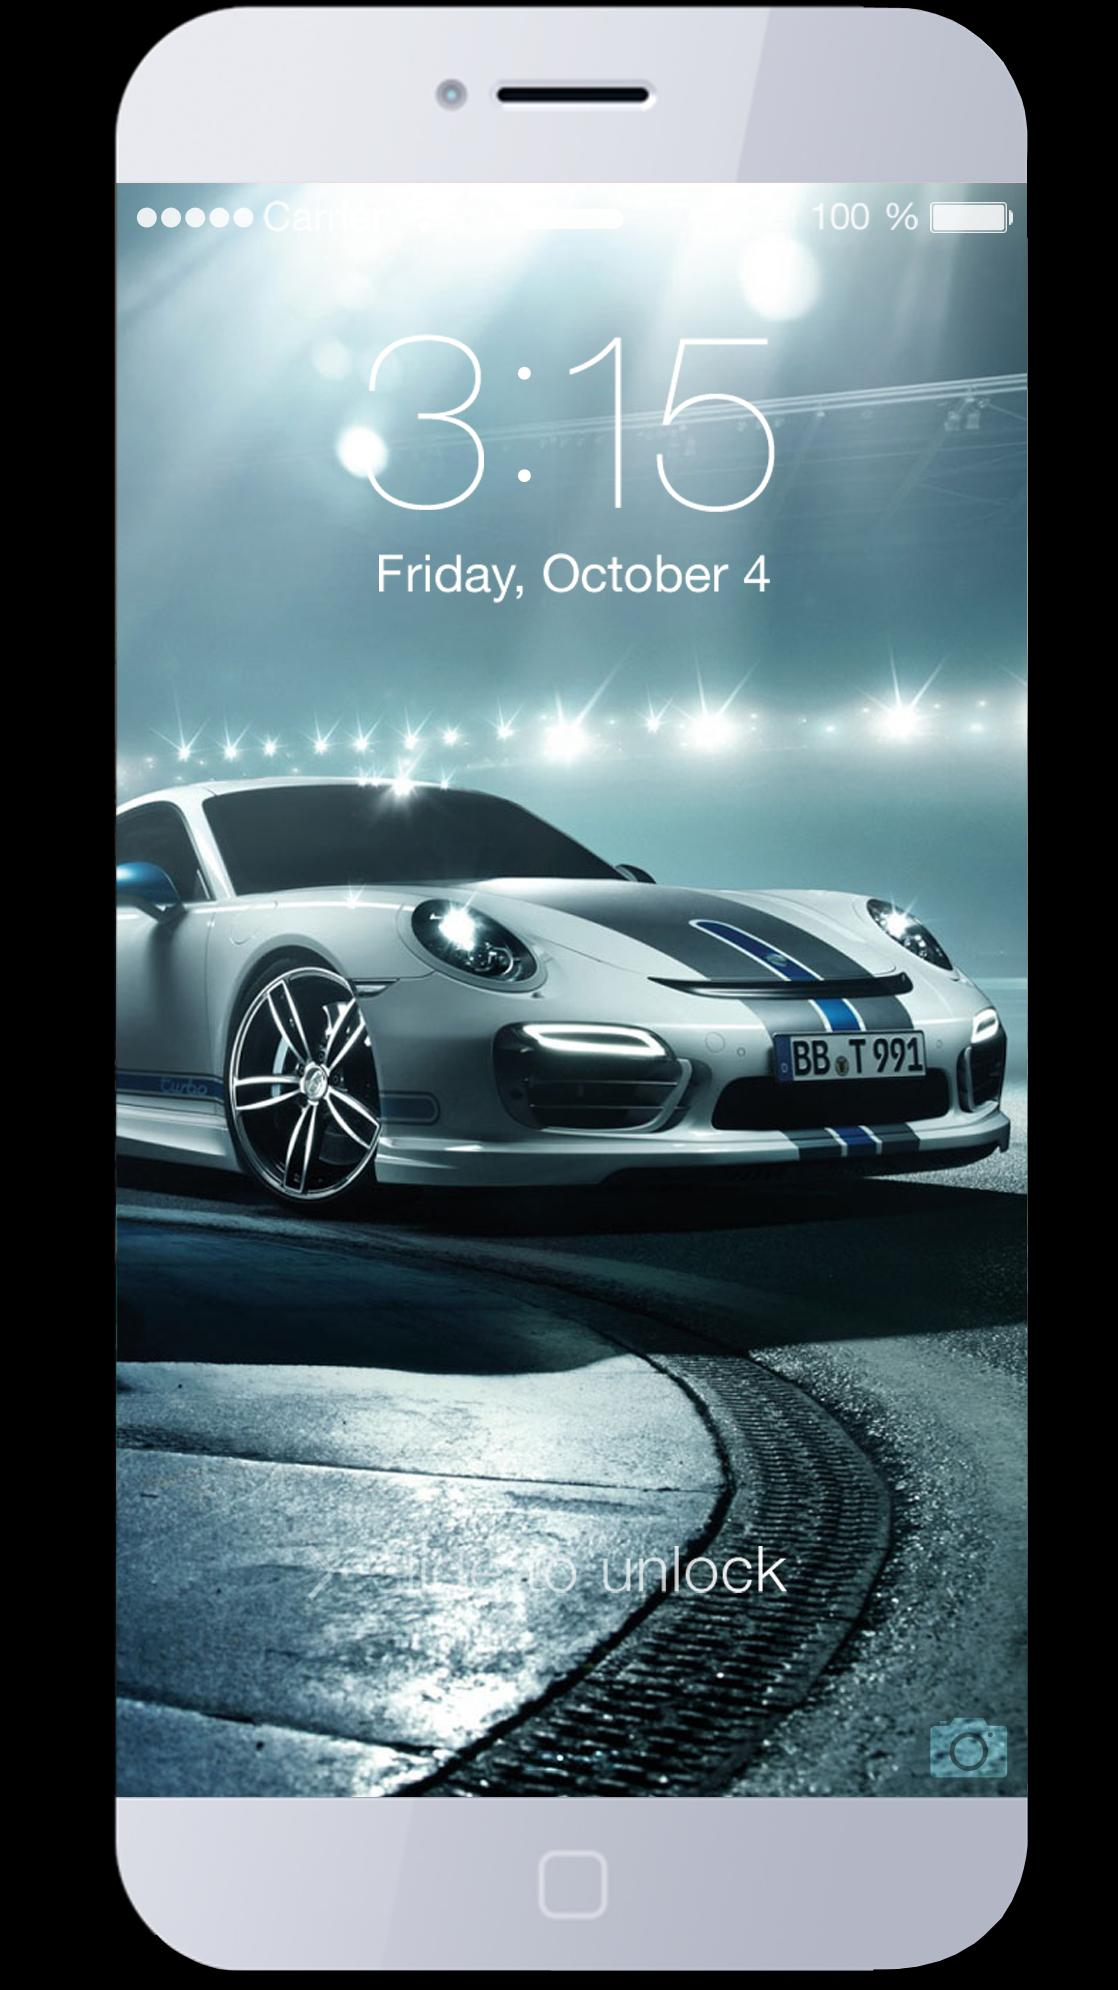 Porsche 911 Turbo S Wallpapers Hd For Android Apk Download